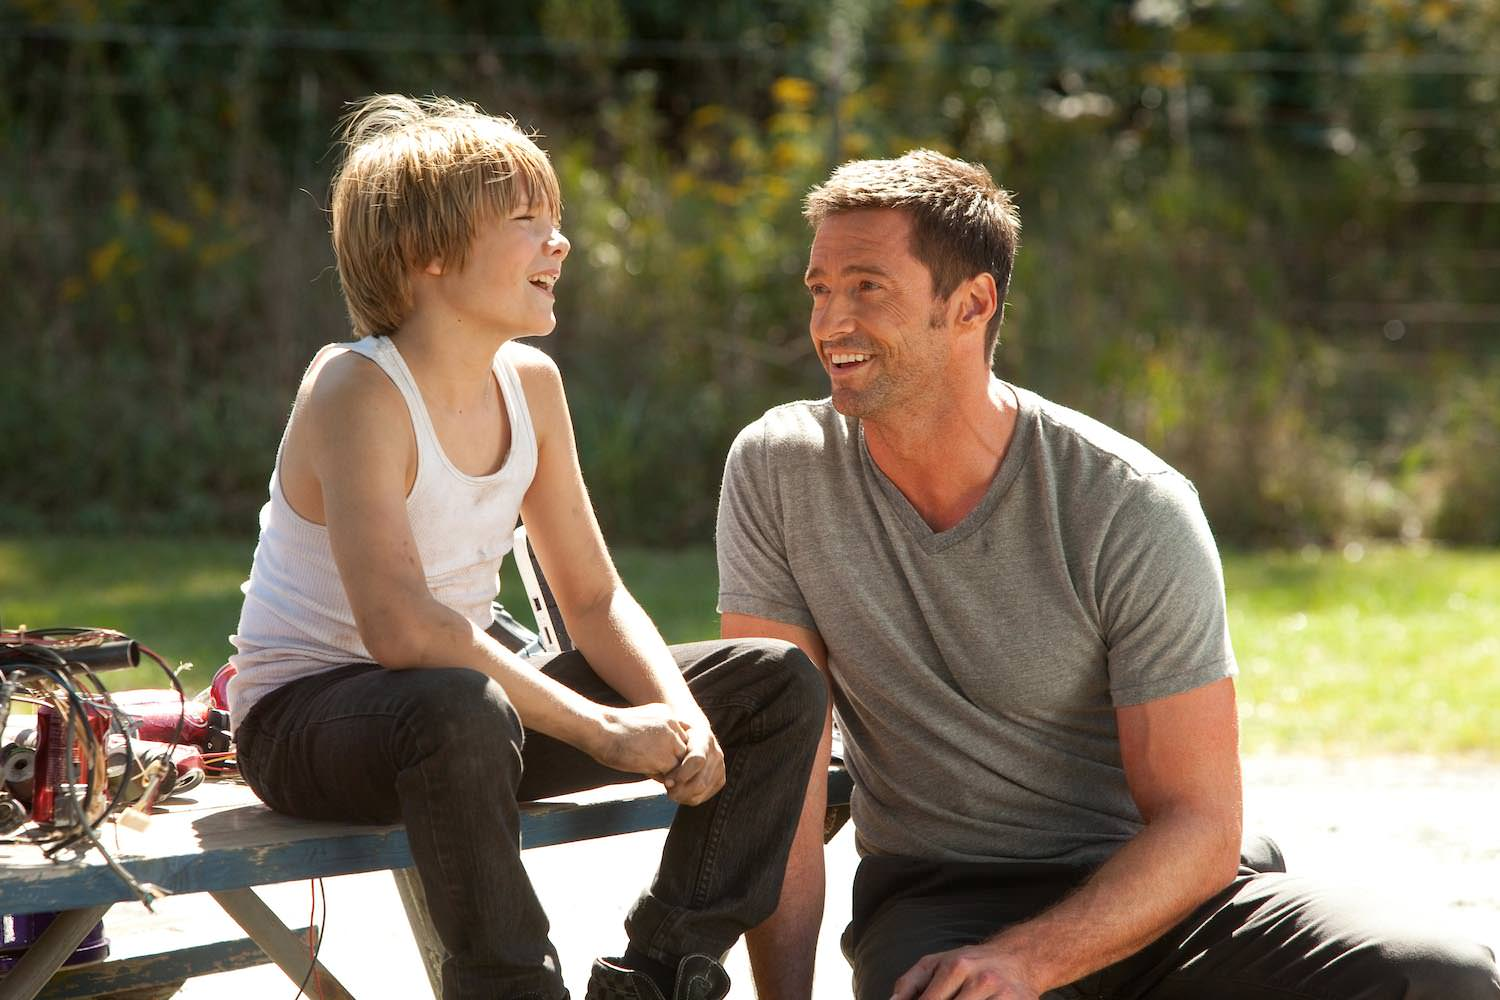 Dakota goyo hugh jackman real steel